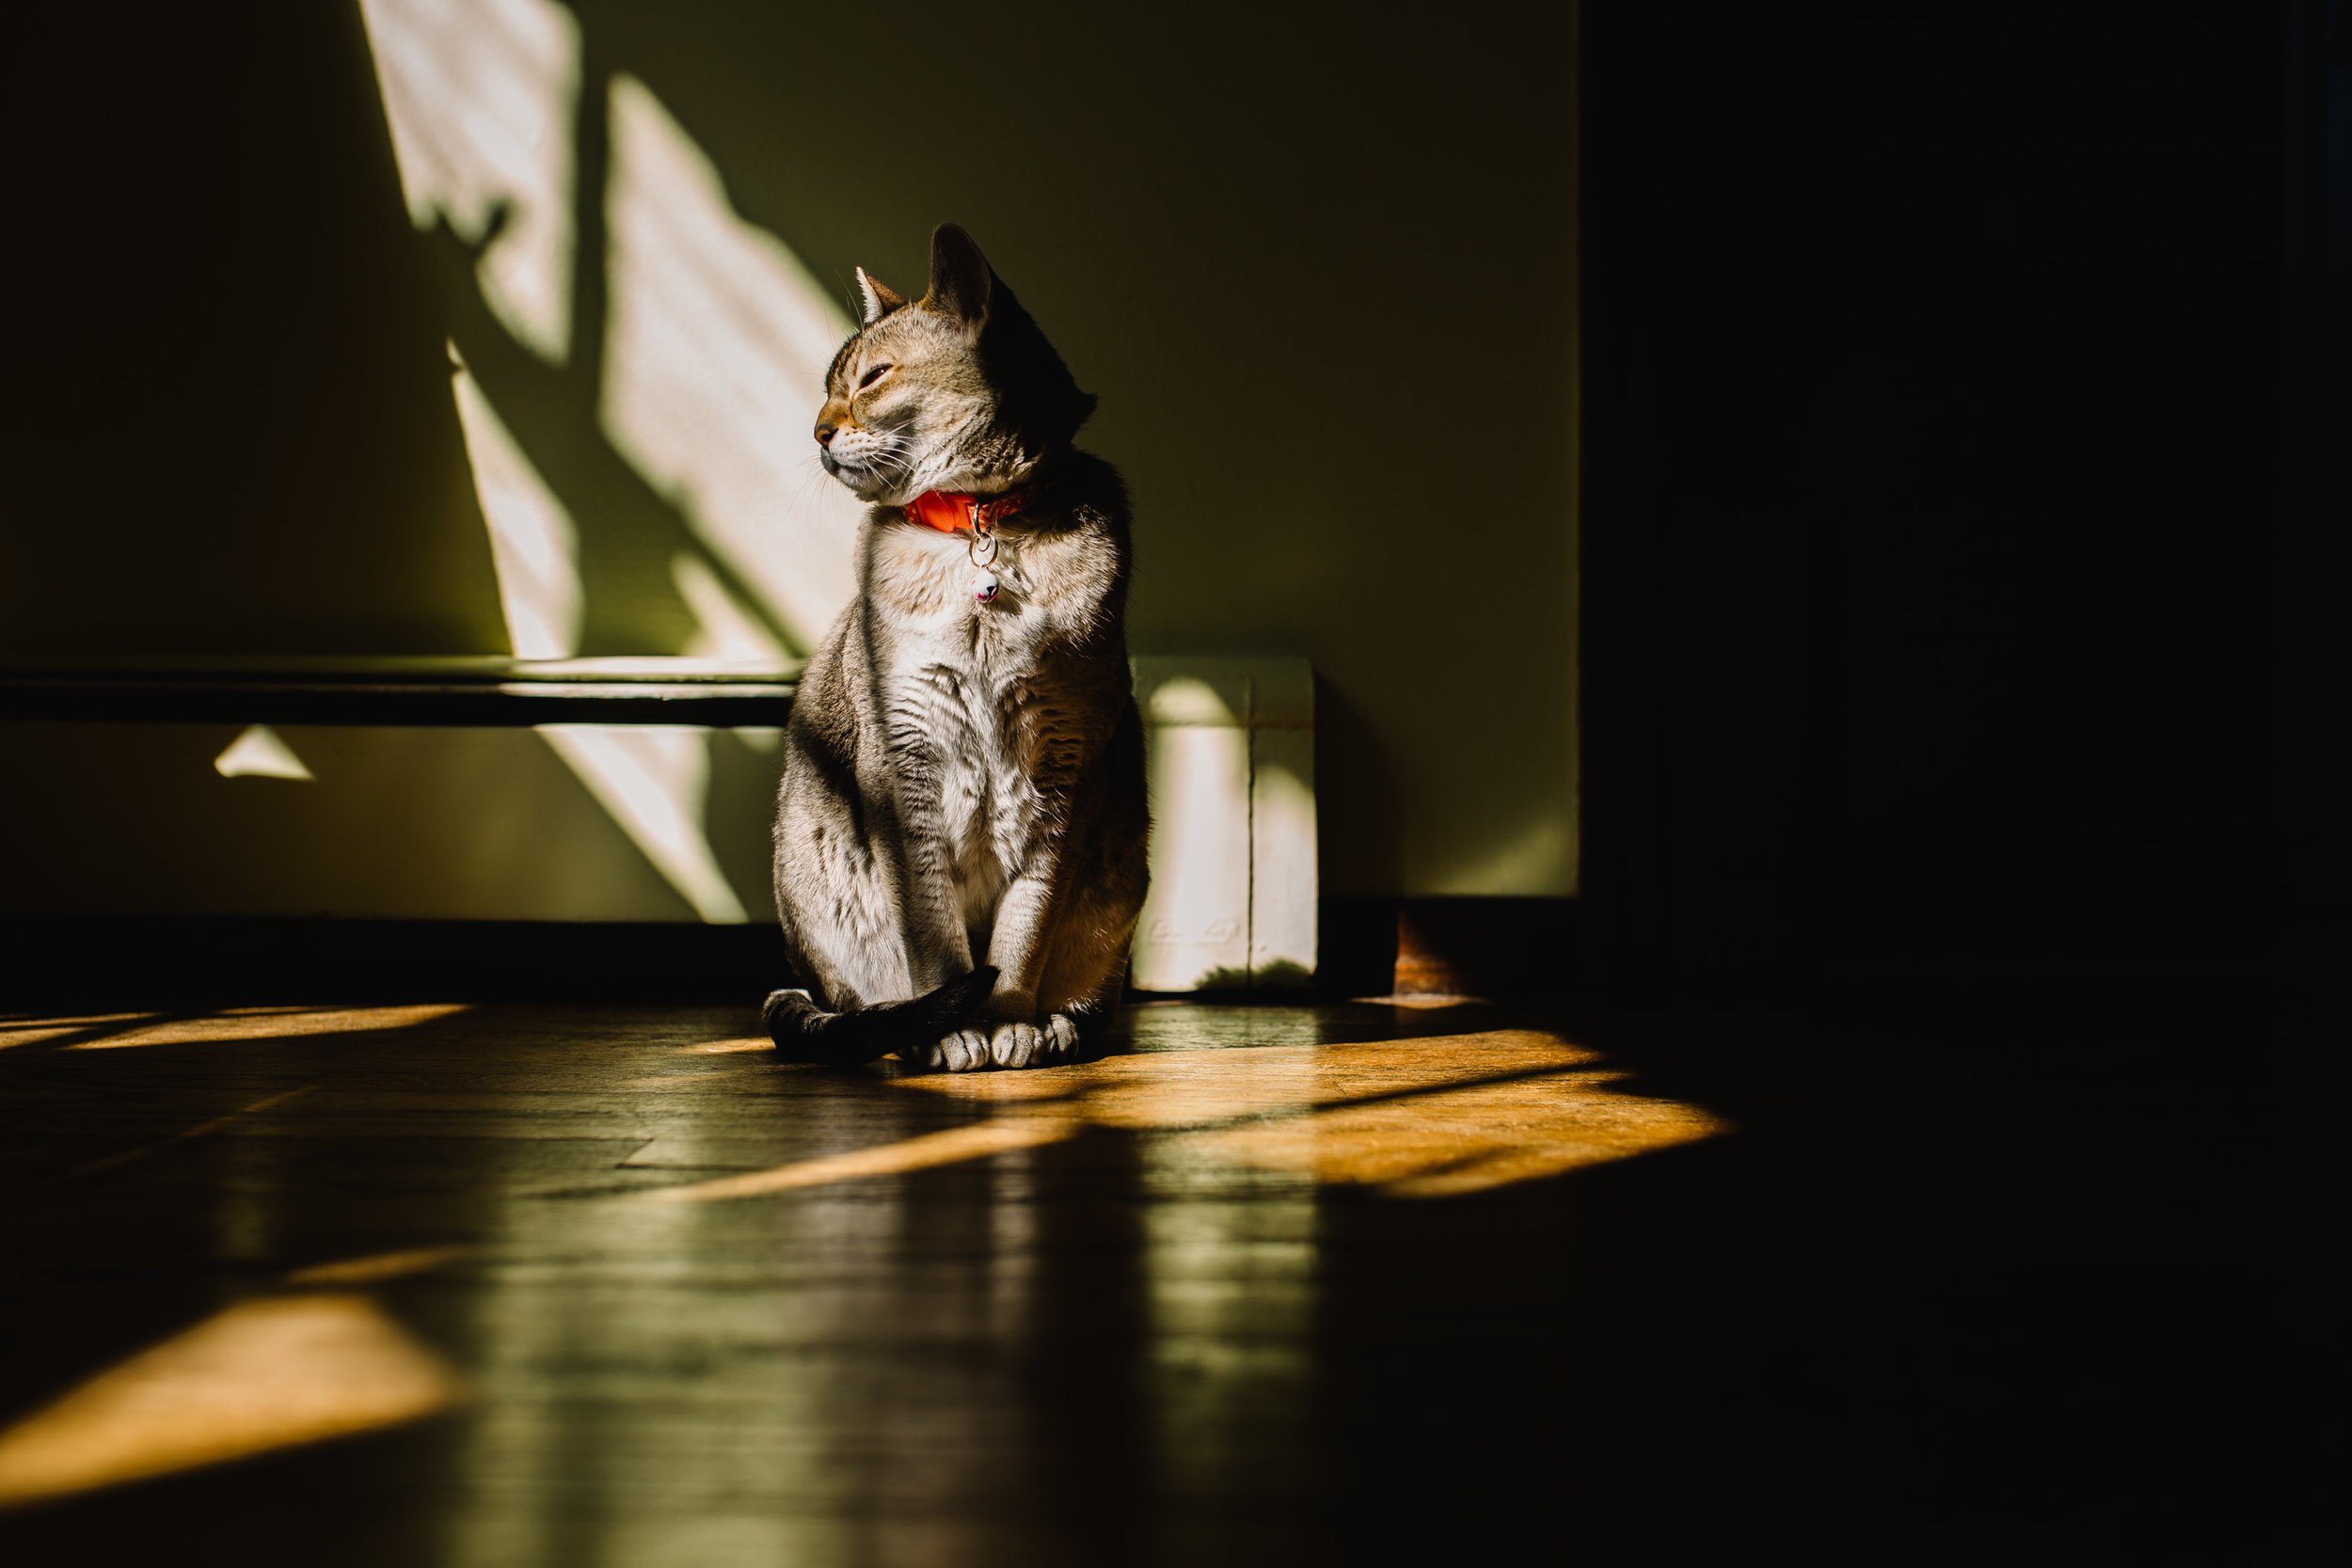 singapura cat | Jennifer Tippett Photography